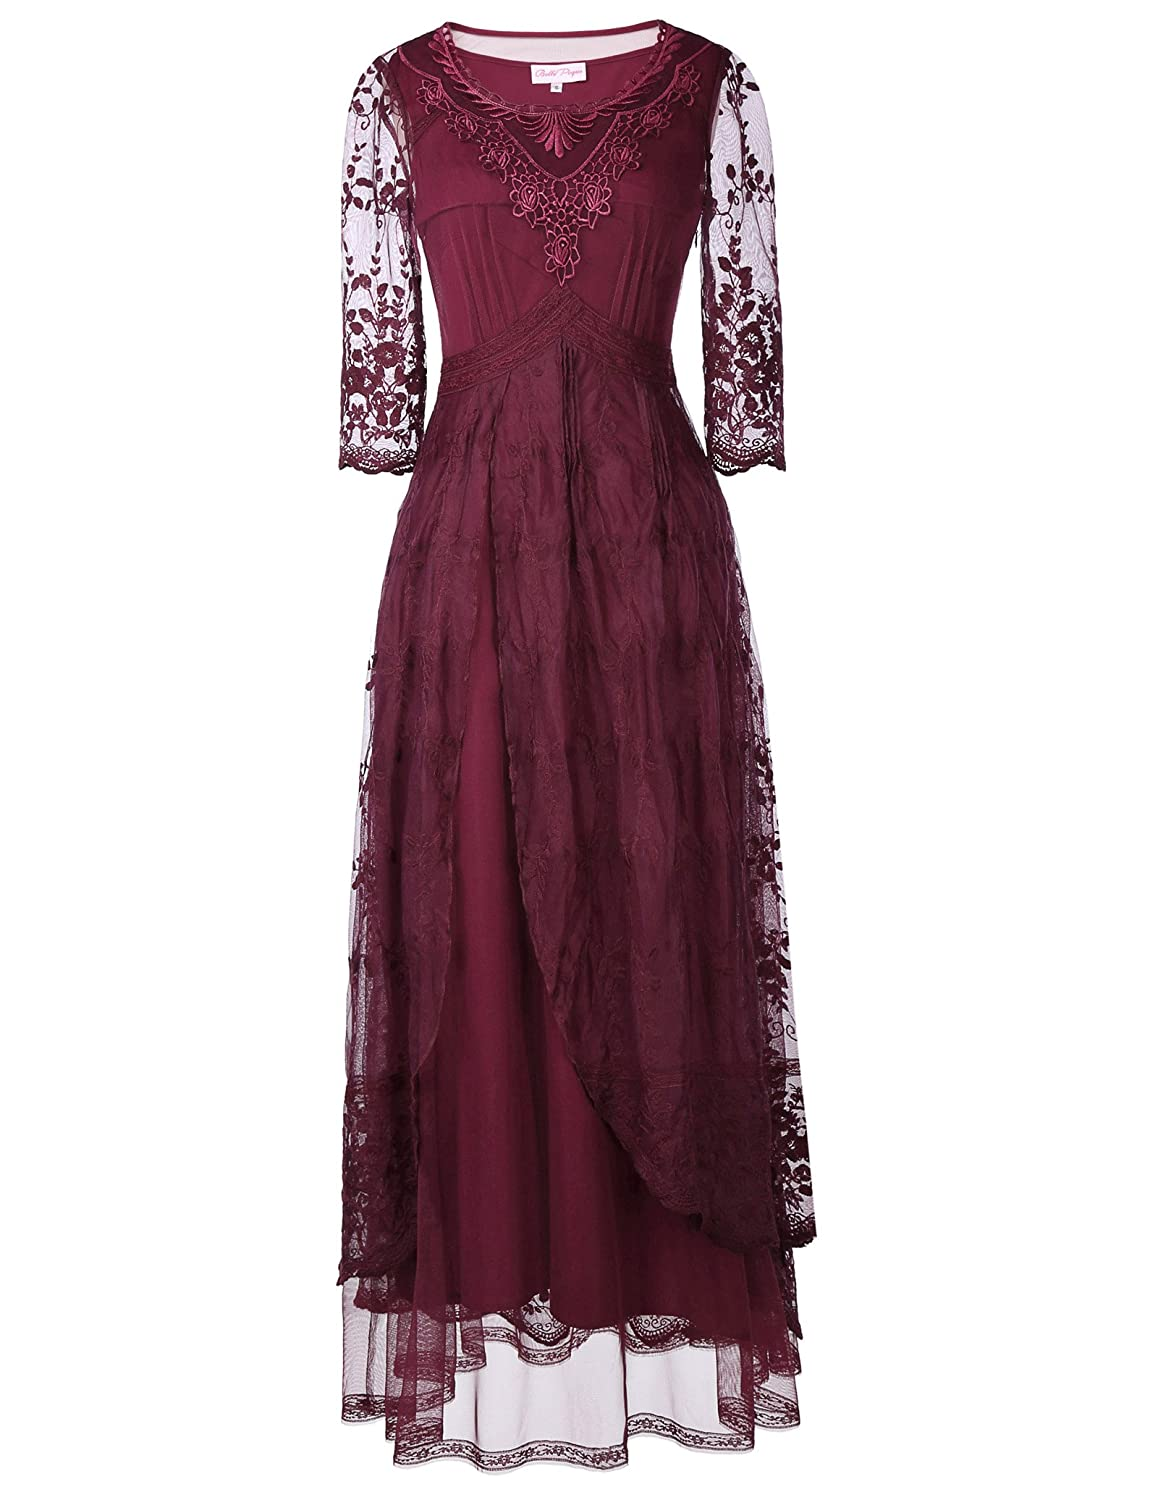 Old Fashioned Dresses | Old Dress Styles Belle Poque Steampunk Victorian Titanic Lace Maxi Dress Tea Party Gown Antique Dress $43.99 AT vintagedancer.com